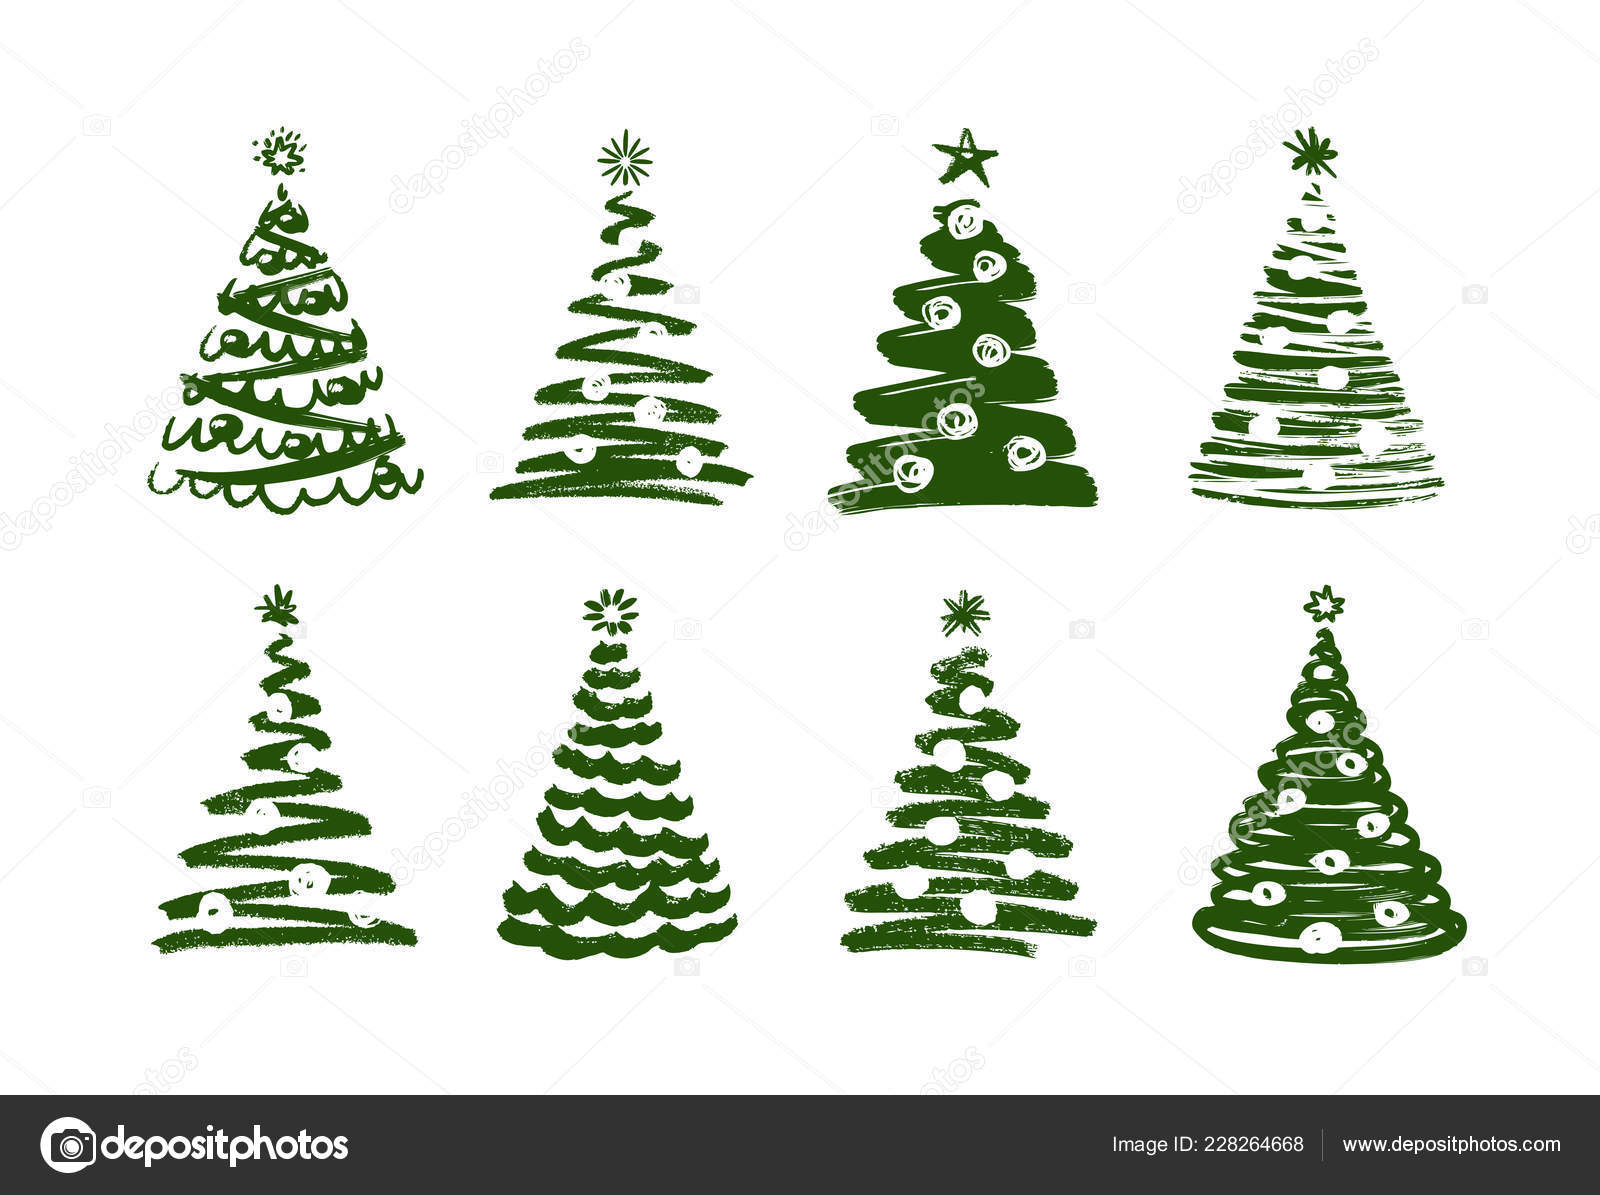 christmas tree abstract symbol new year xmas set of icons vector illustration stock vector c sergeypykhonin 228264668 https depositphotos com 228264668 stock illustration christmas tree abstract symbol new html